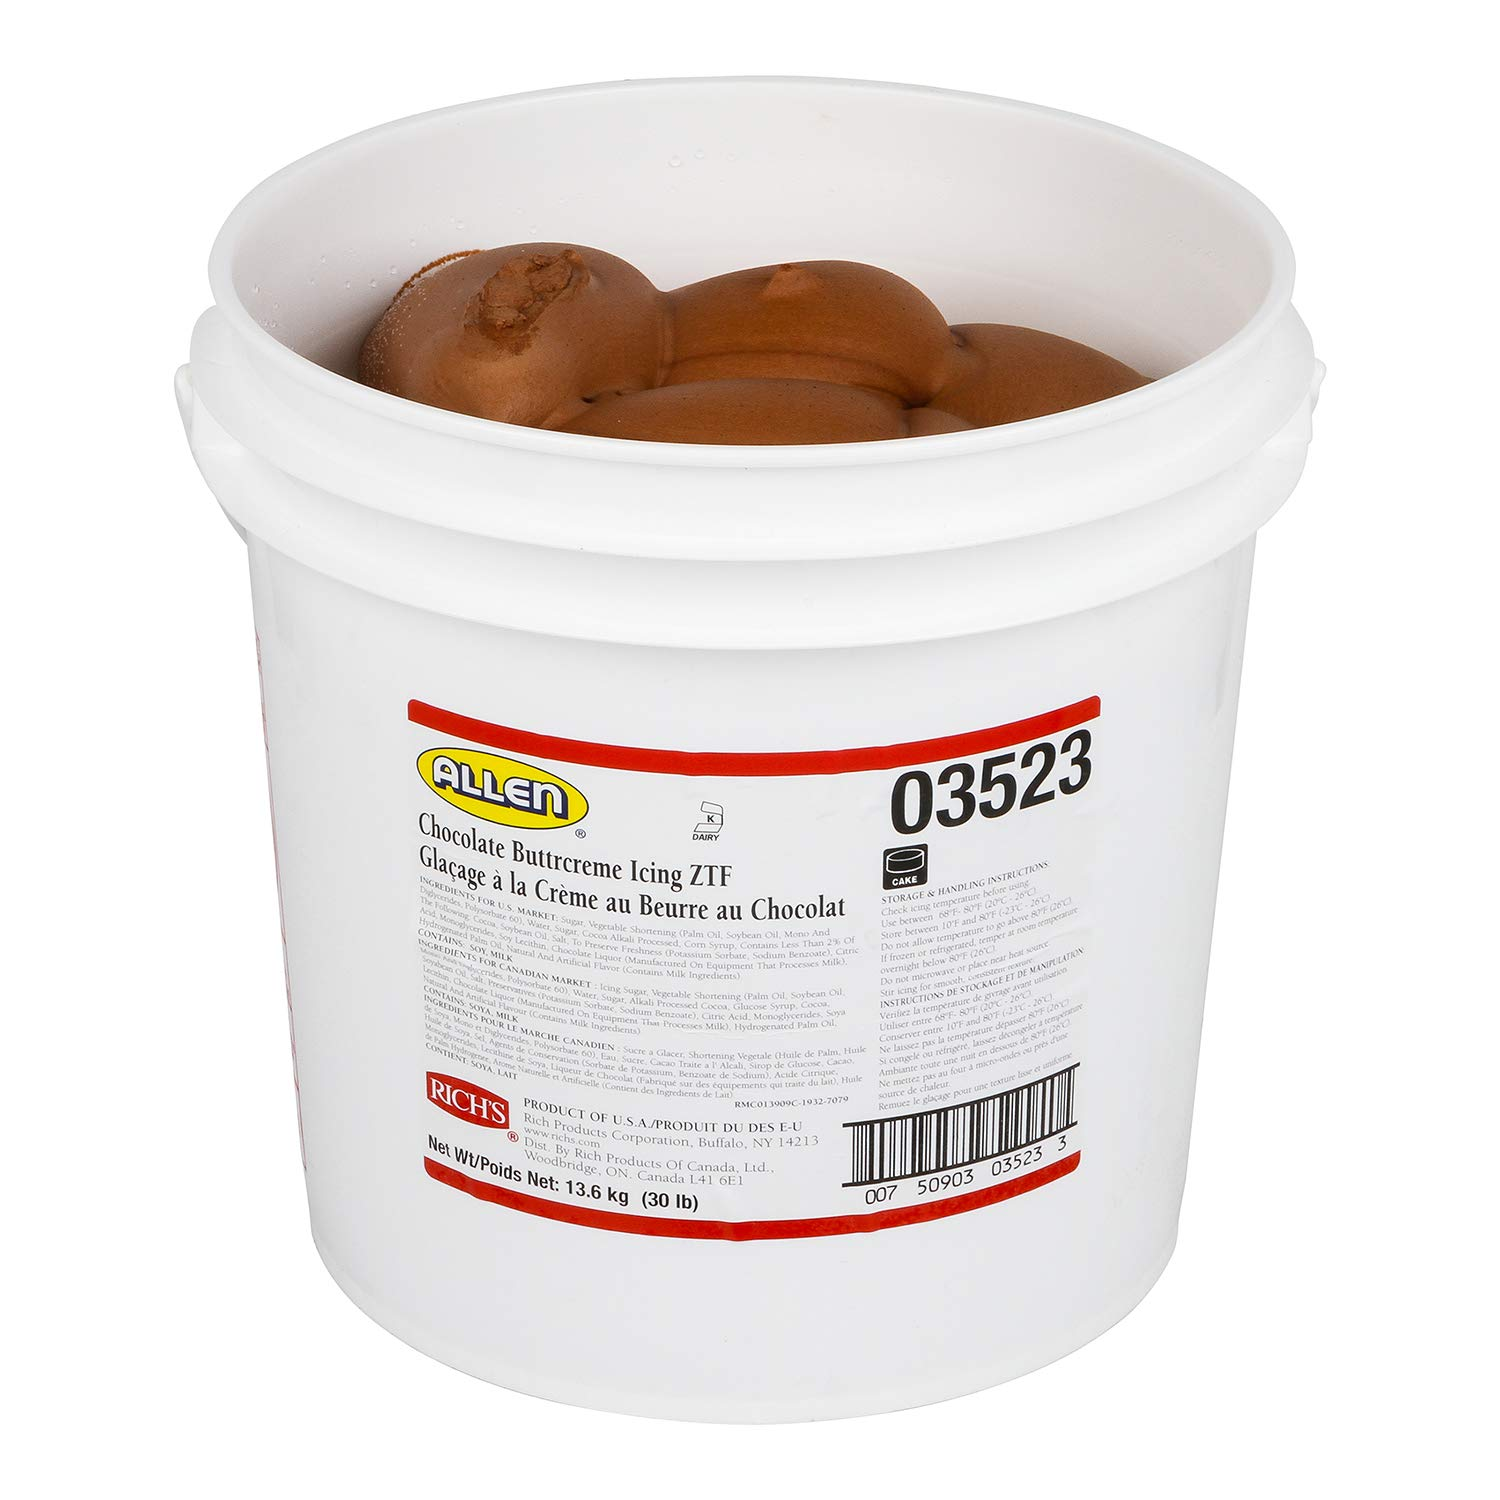 Rich's JW Allen Pre-Whipped Chocolate Buttrcreme Icing ZTF, 30 lb by Rich's (Image #3)